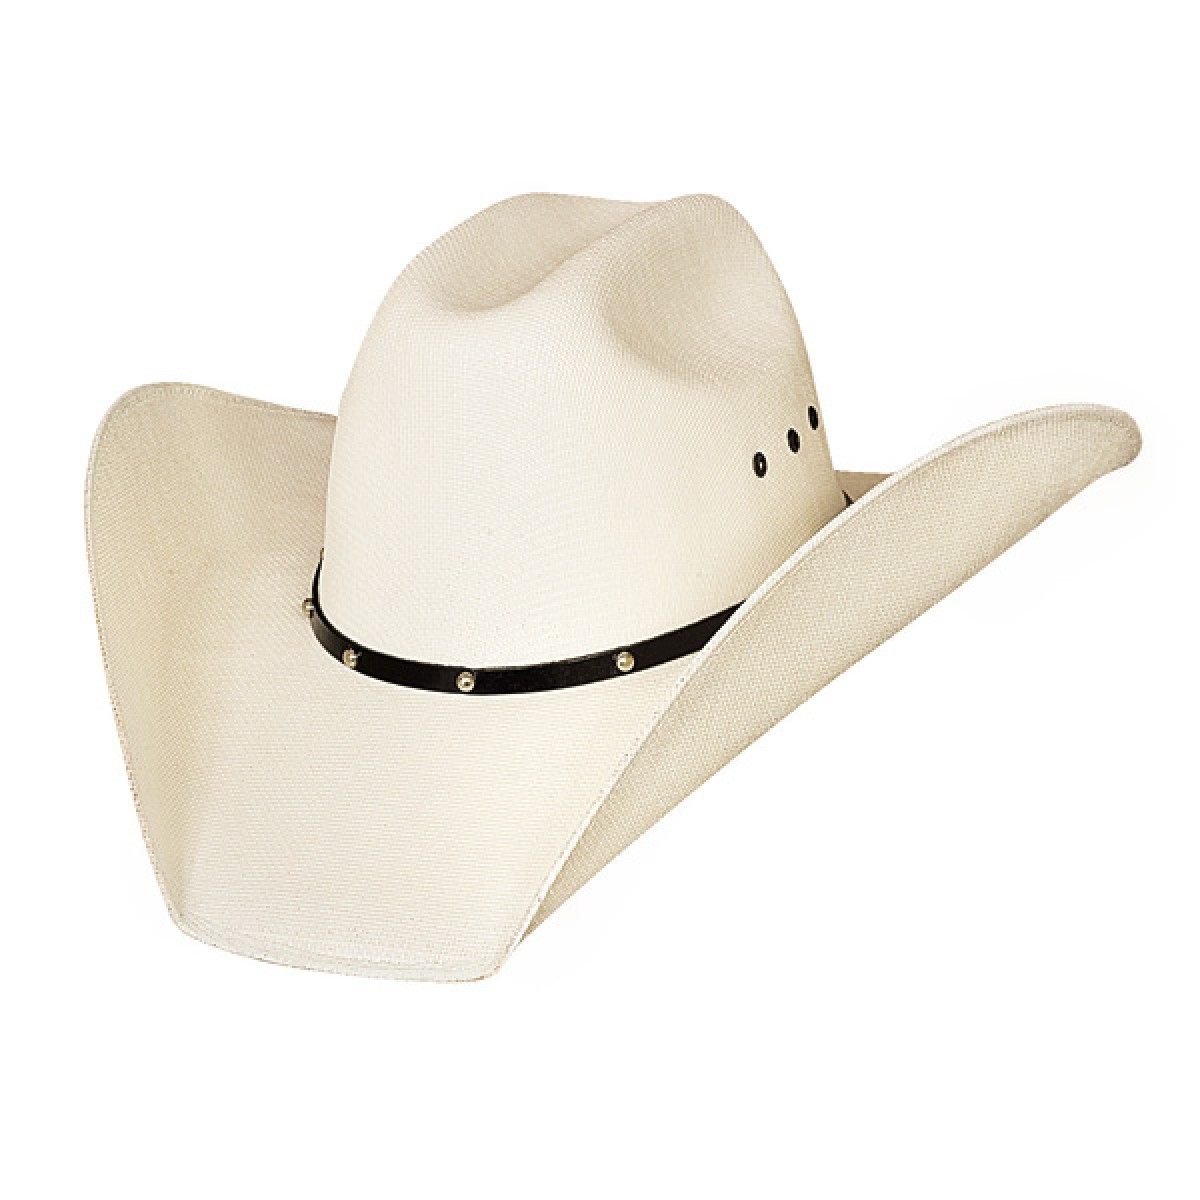 straw cowboy hats bullhide justin moore double barrel ace - (50x) straw cowboy hat CXTSPTB